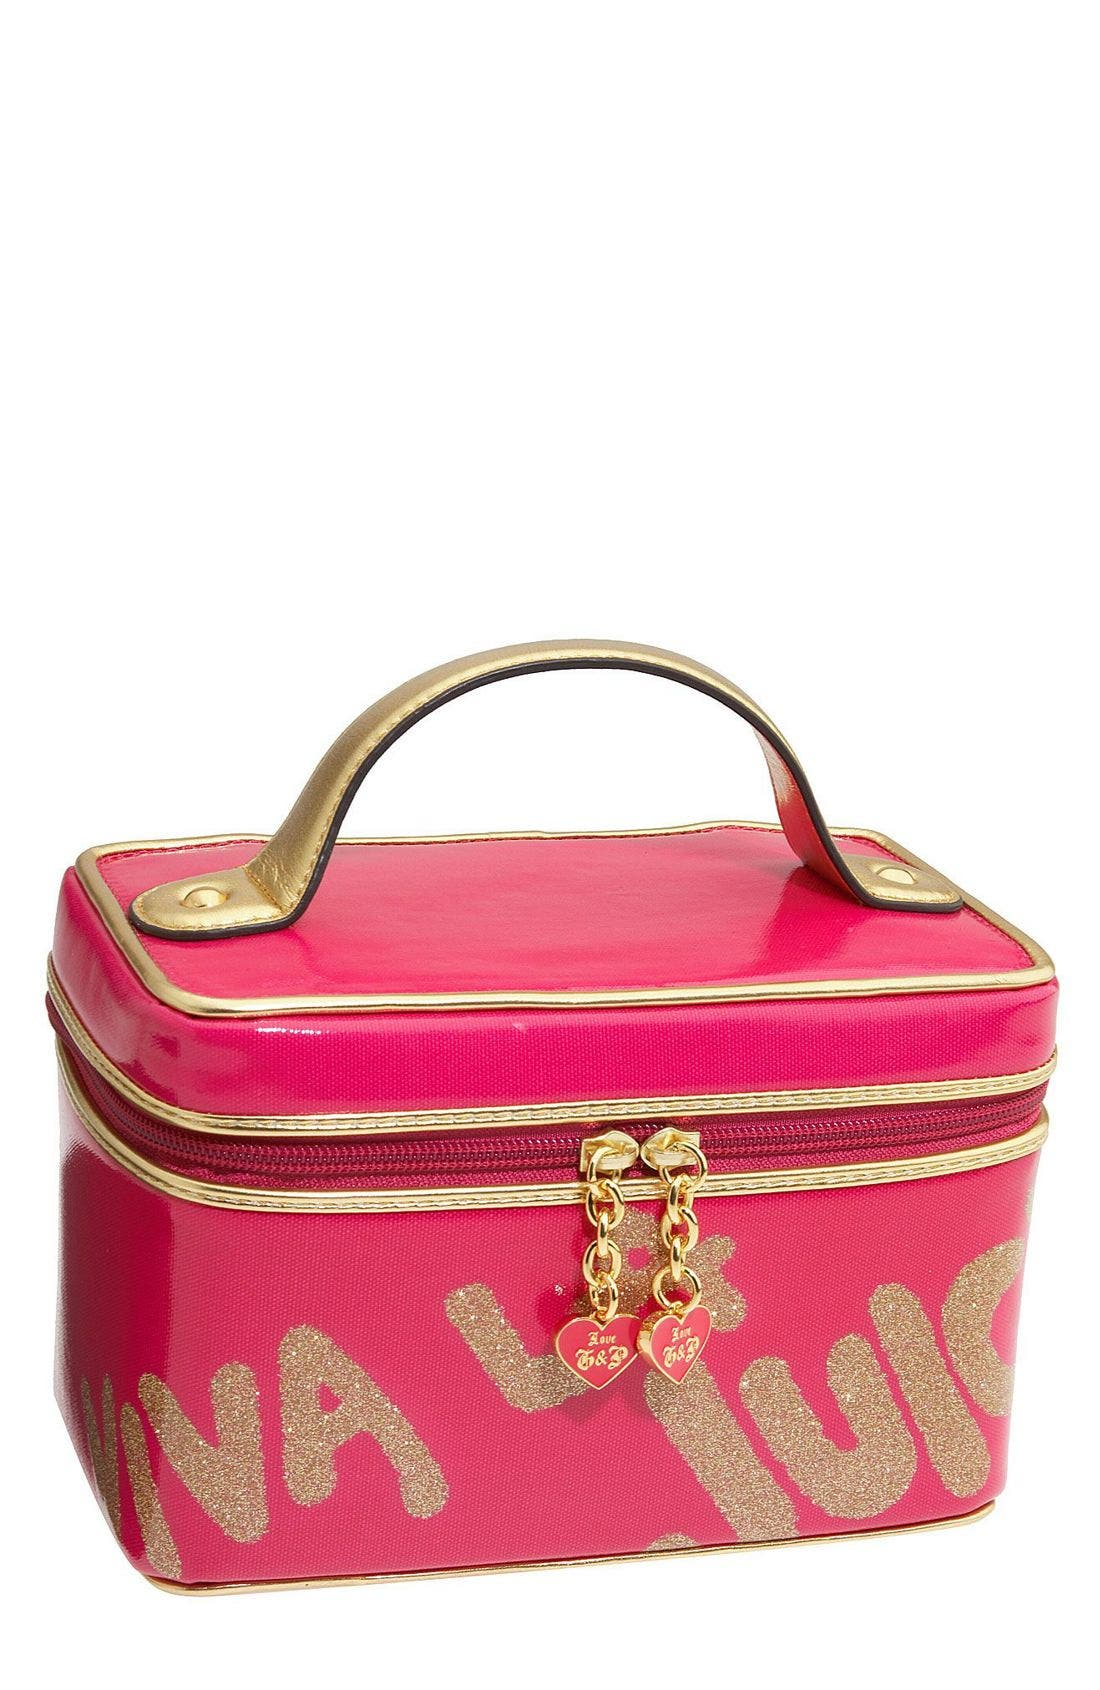 'Viva la Juicy' Cosmetics Case, Main, color, 659